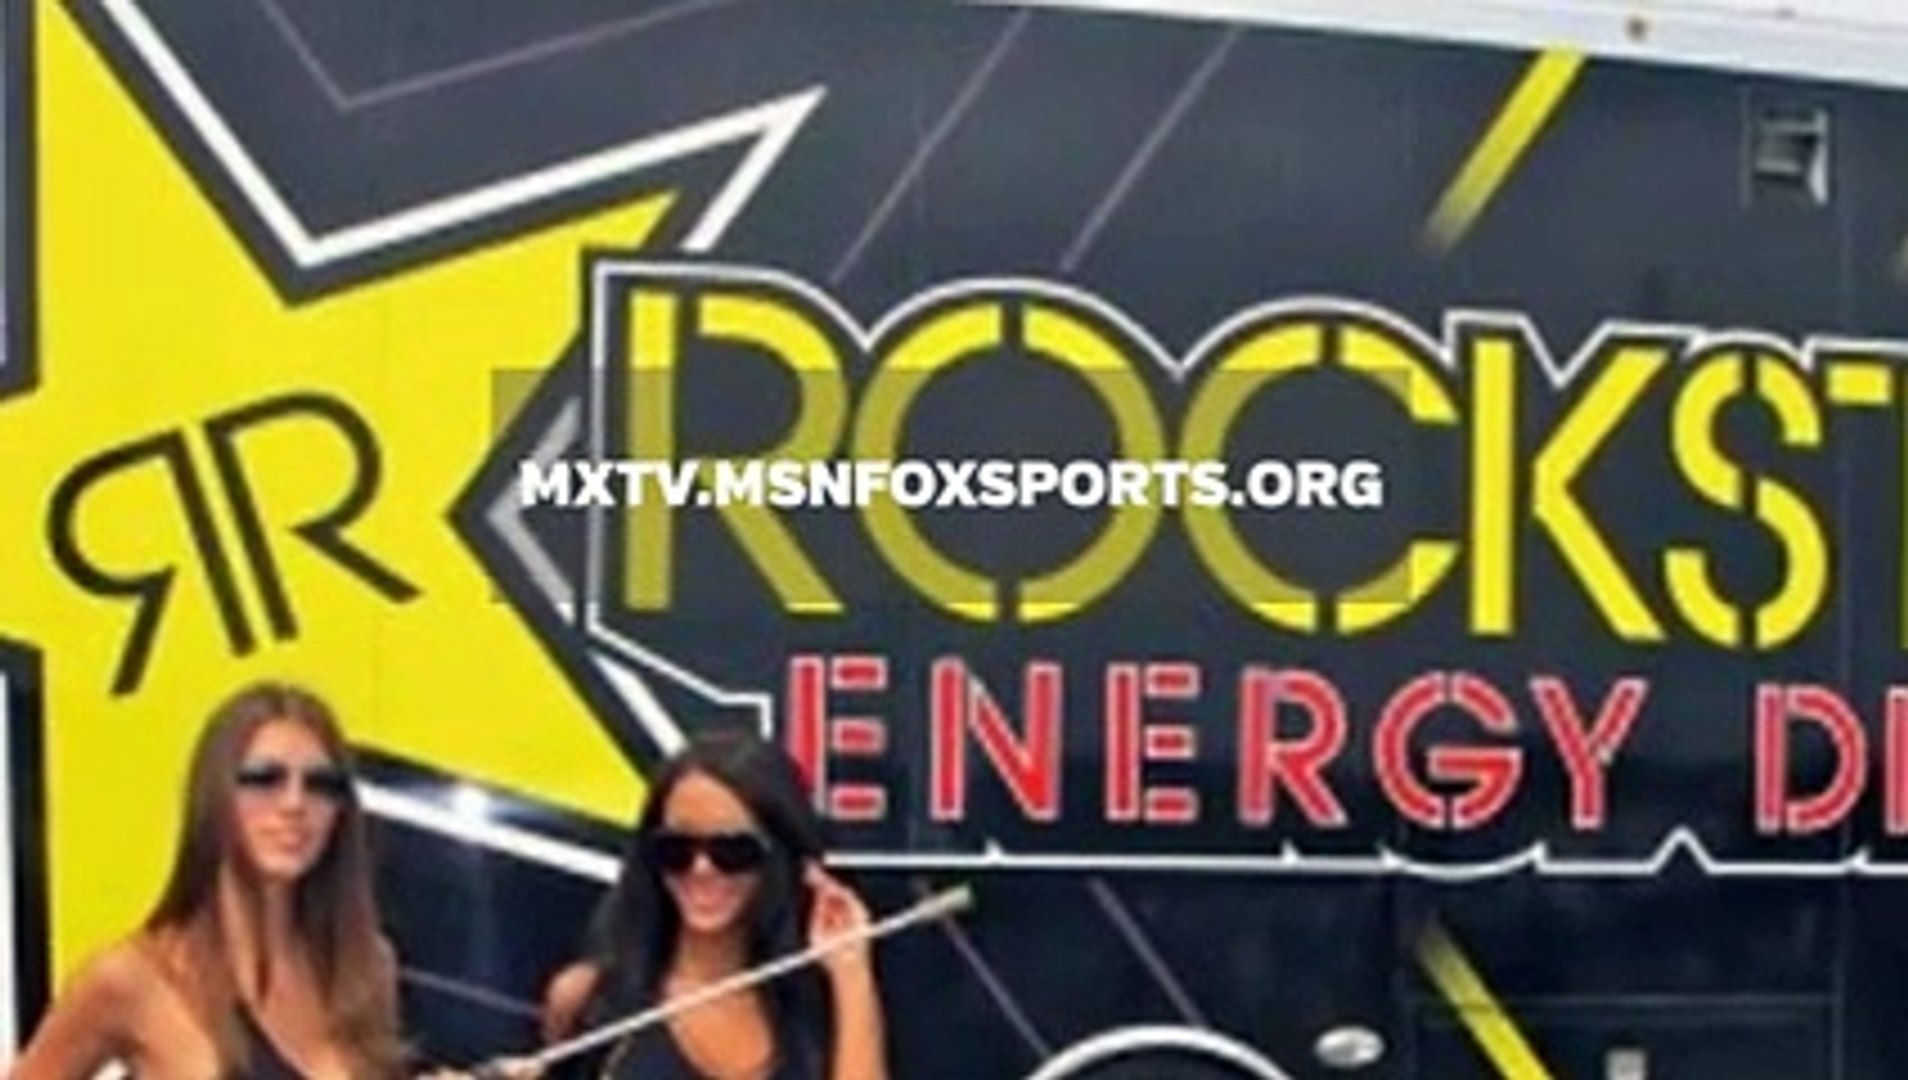 Watch, ga dome highlights, dome highlights, highlights atlanta, supercross highlights atlanta